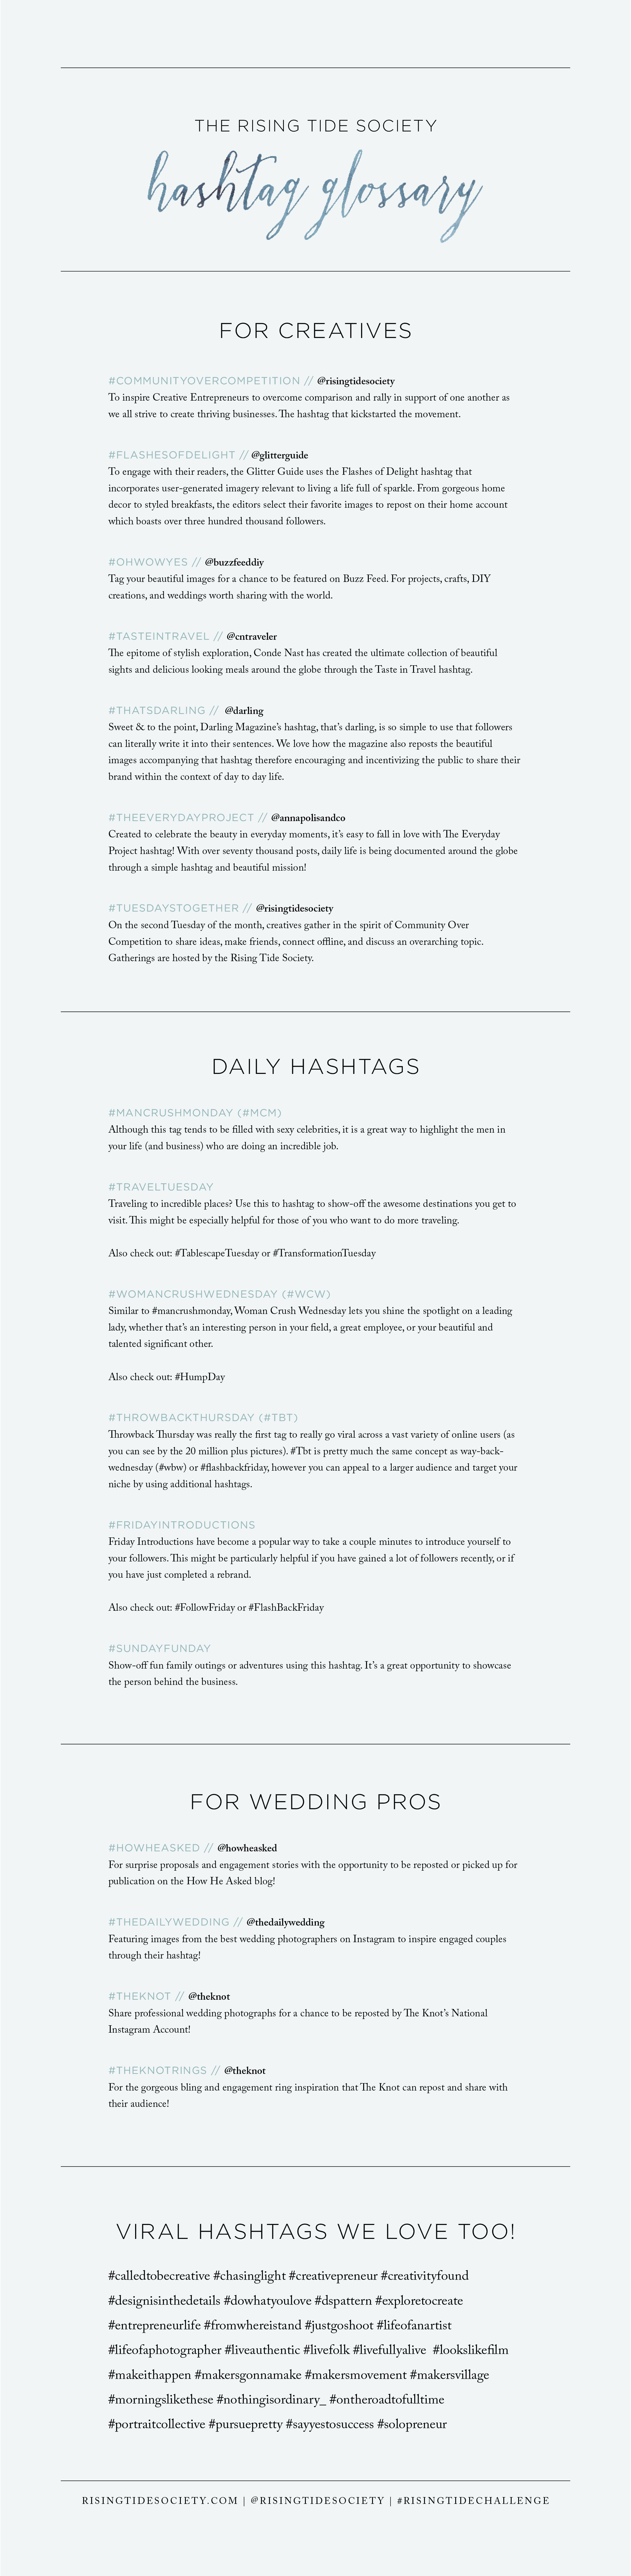 Instagram Hashtag Glossary for Creatives in 2018 | DESIGN HER ...